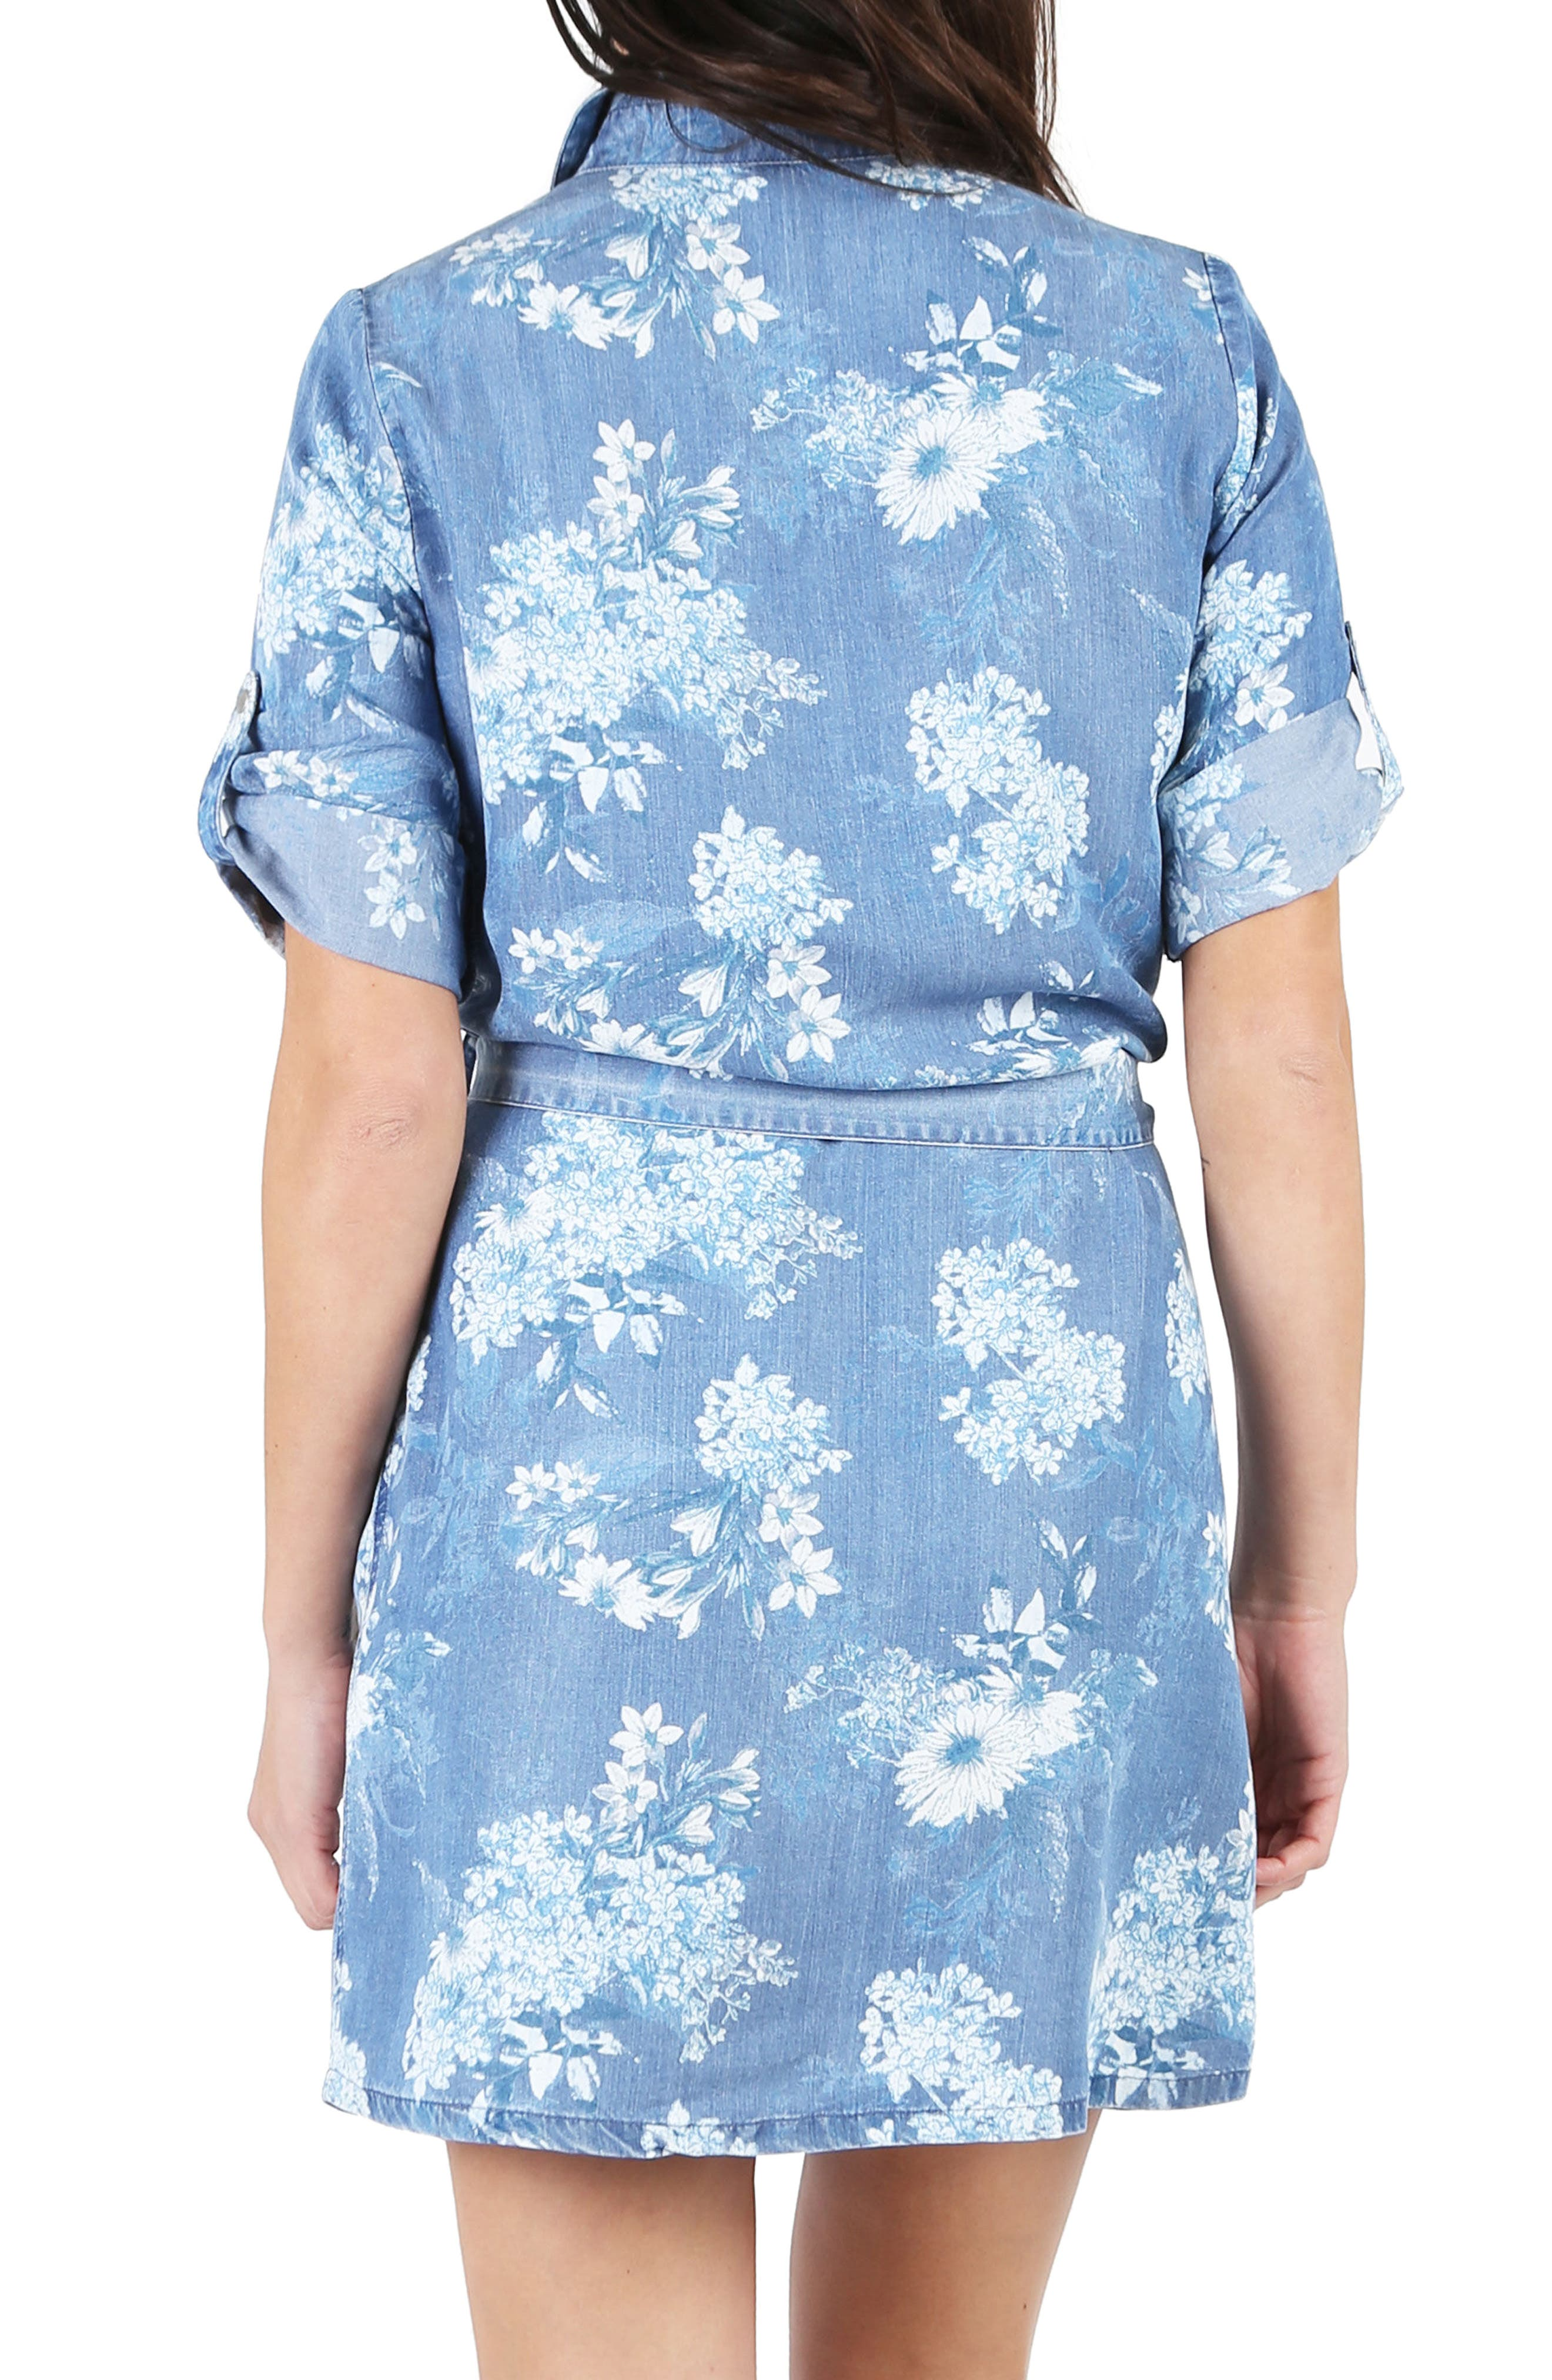 Amerie Belted Chambray Dress,                             Alternate thumbnail 2, color,                             400